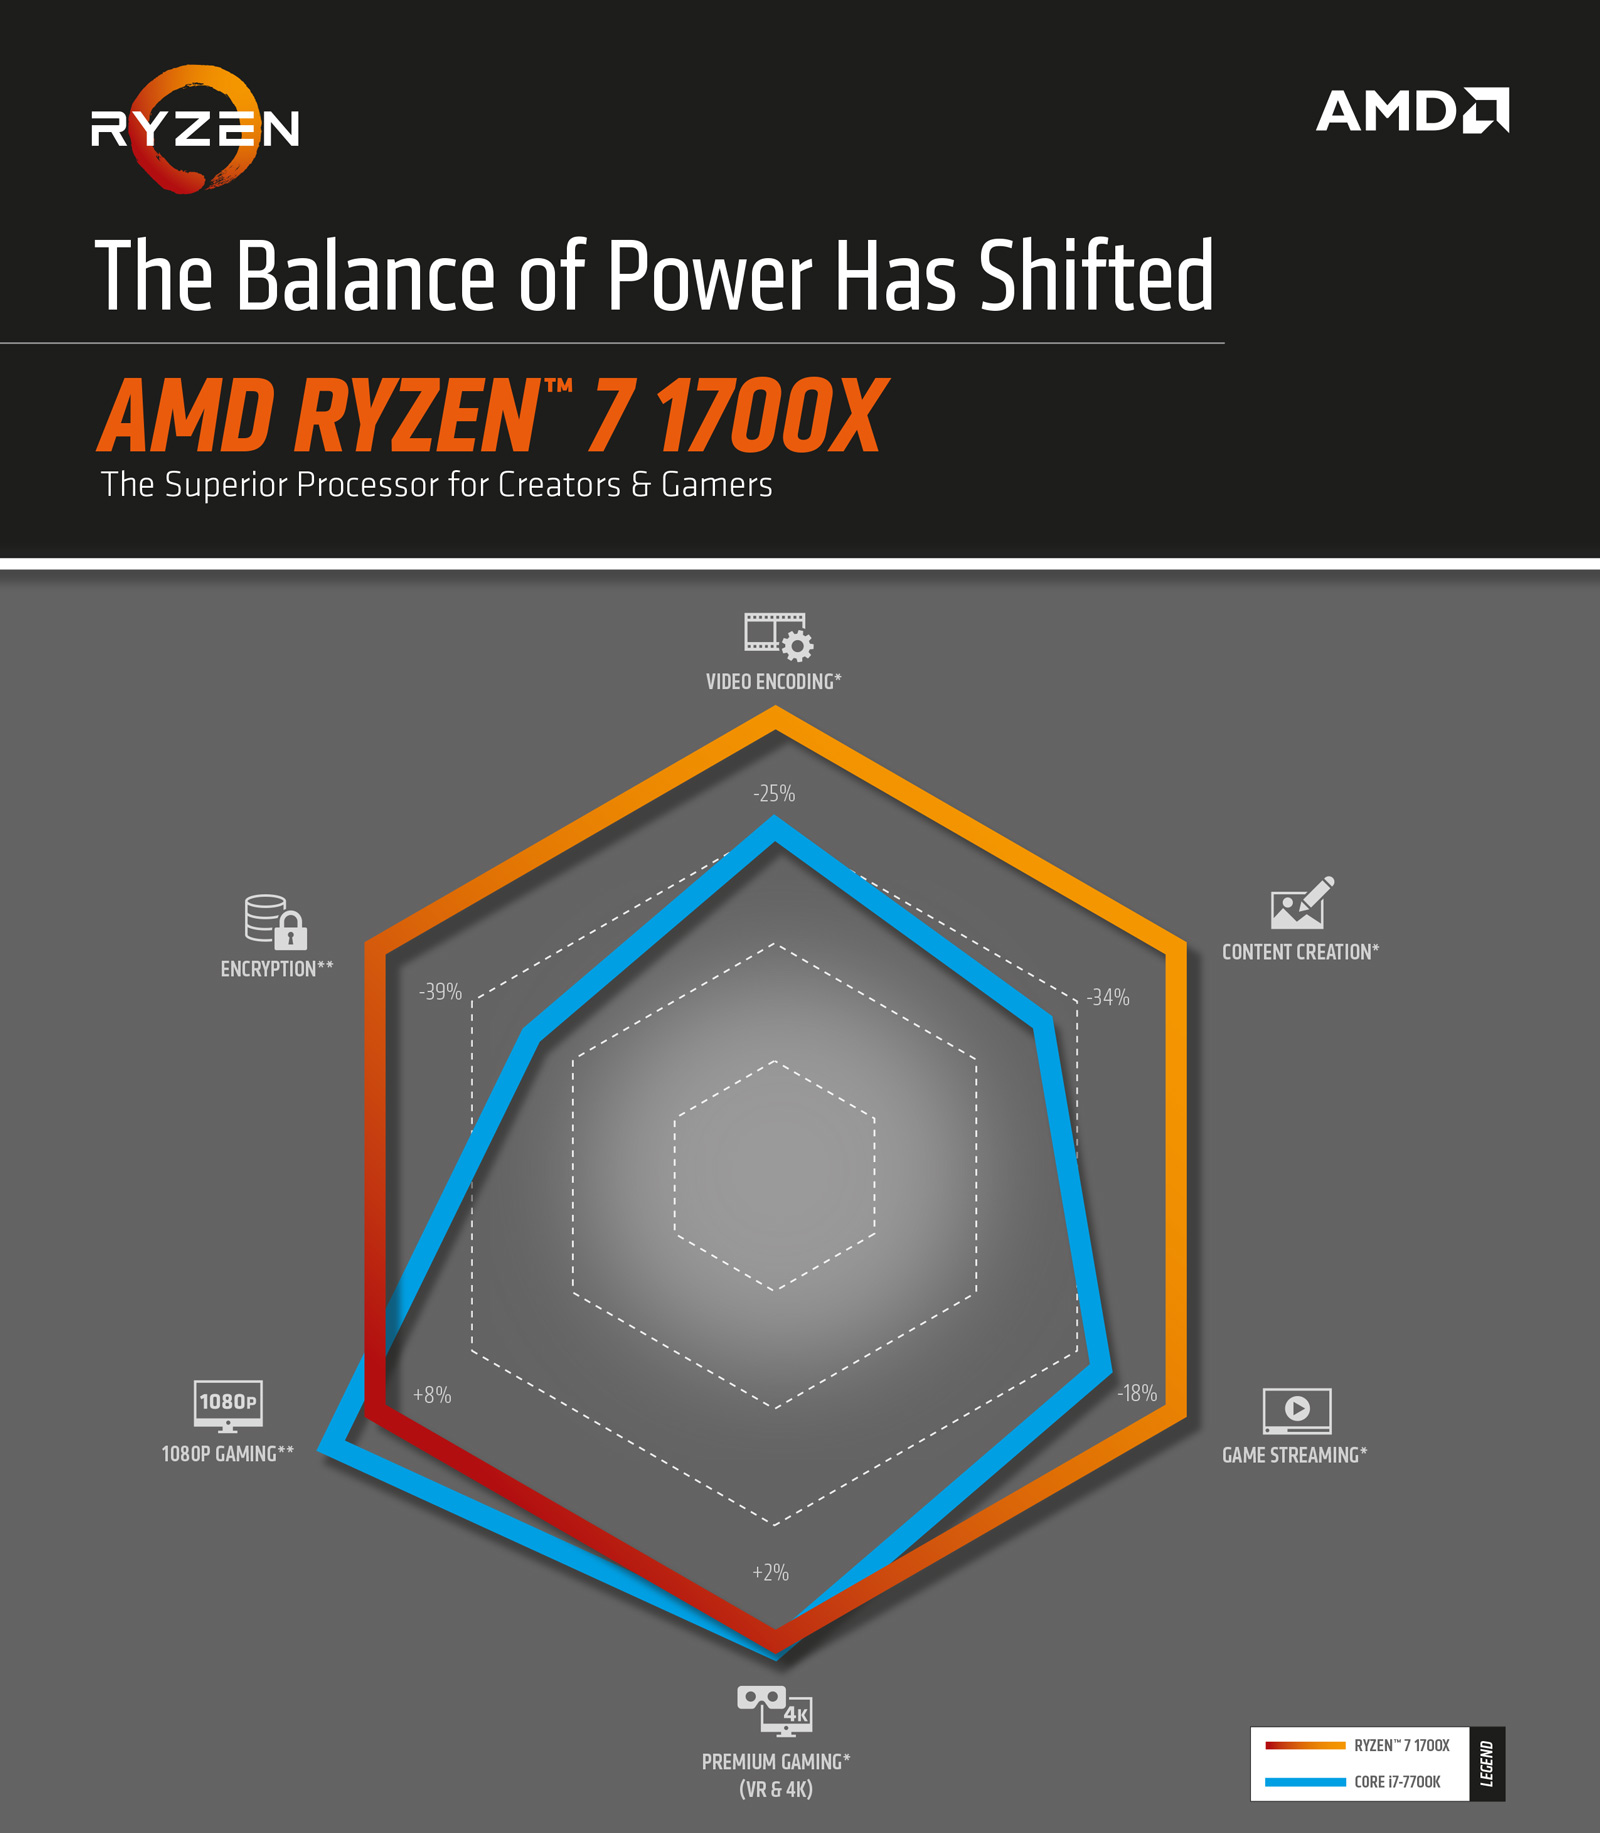 AMD Ryzen 1700X faster then Intel i7 7700K